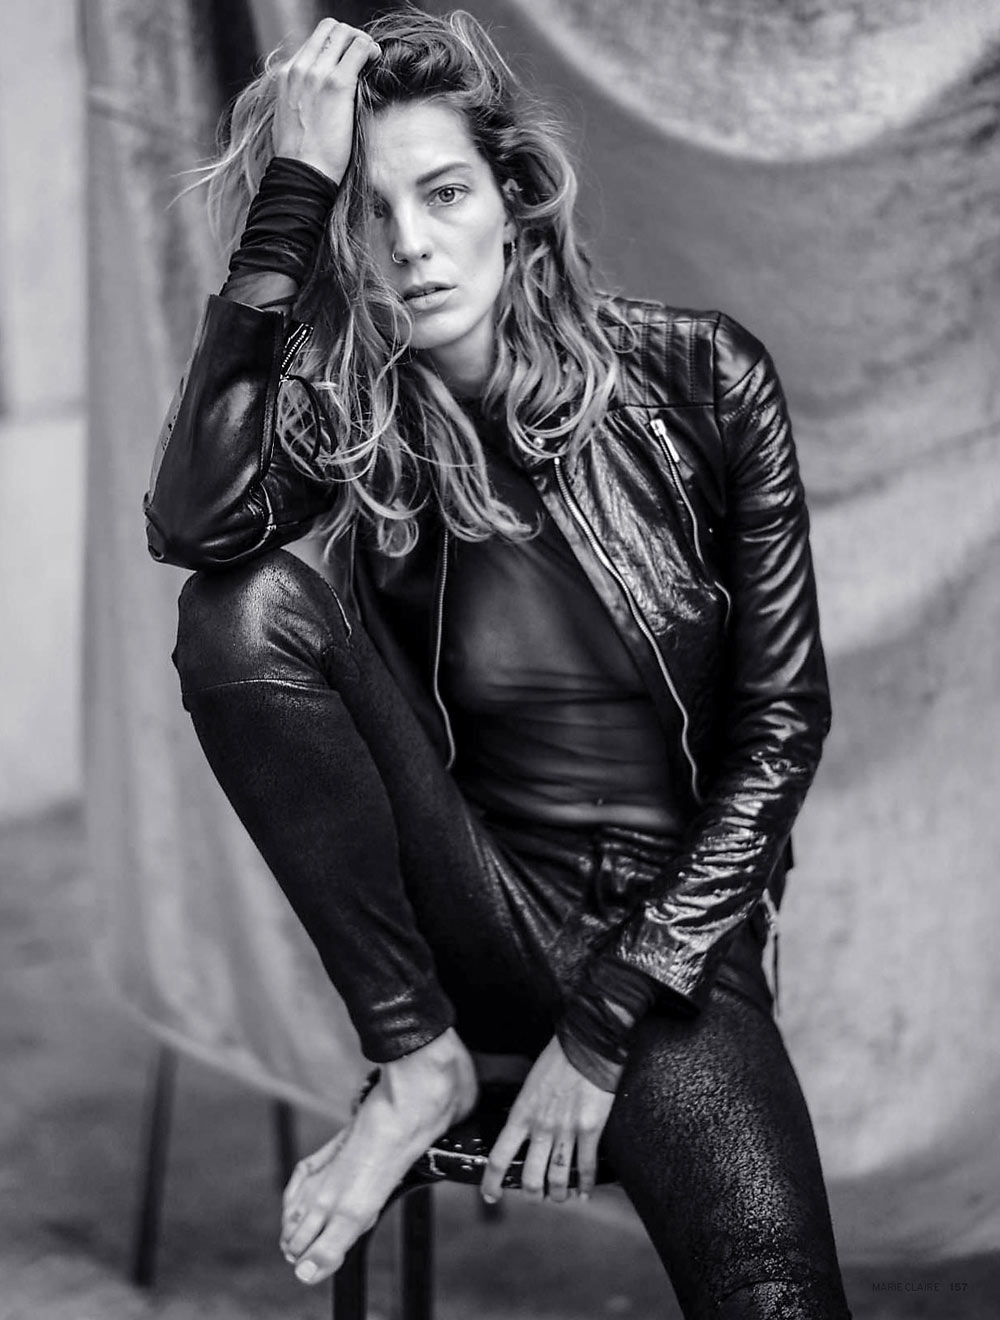 Daria werbowy mathieu cesar photographer behind the scenes marie claire russia may 2014 celine